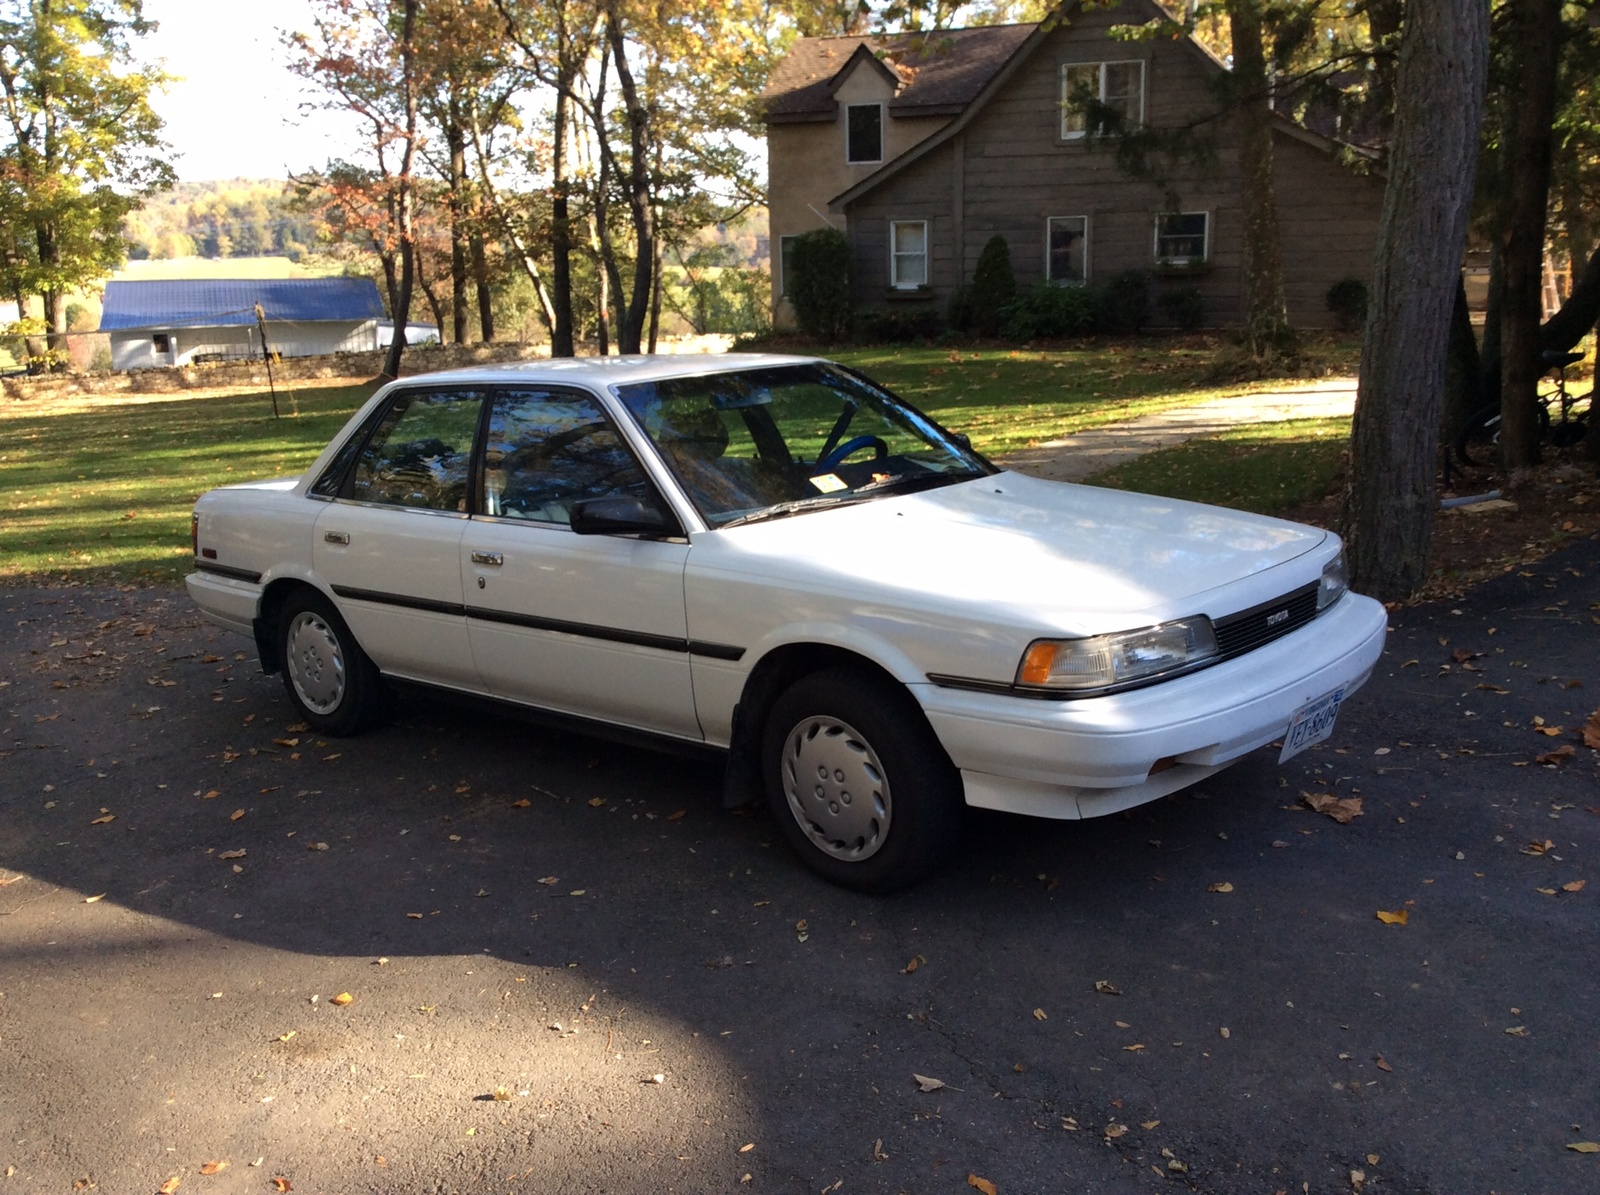 toyota camry questions 91 camry won 39 t start just turned off canks fin. Black Bedroom Furniture Sets. Home Design Ideas